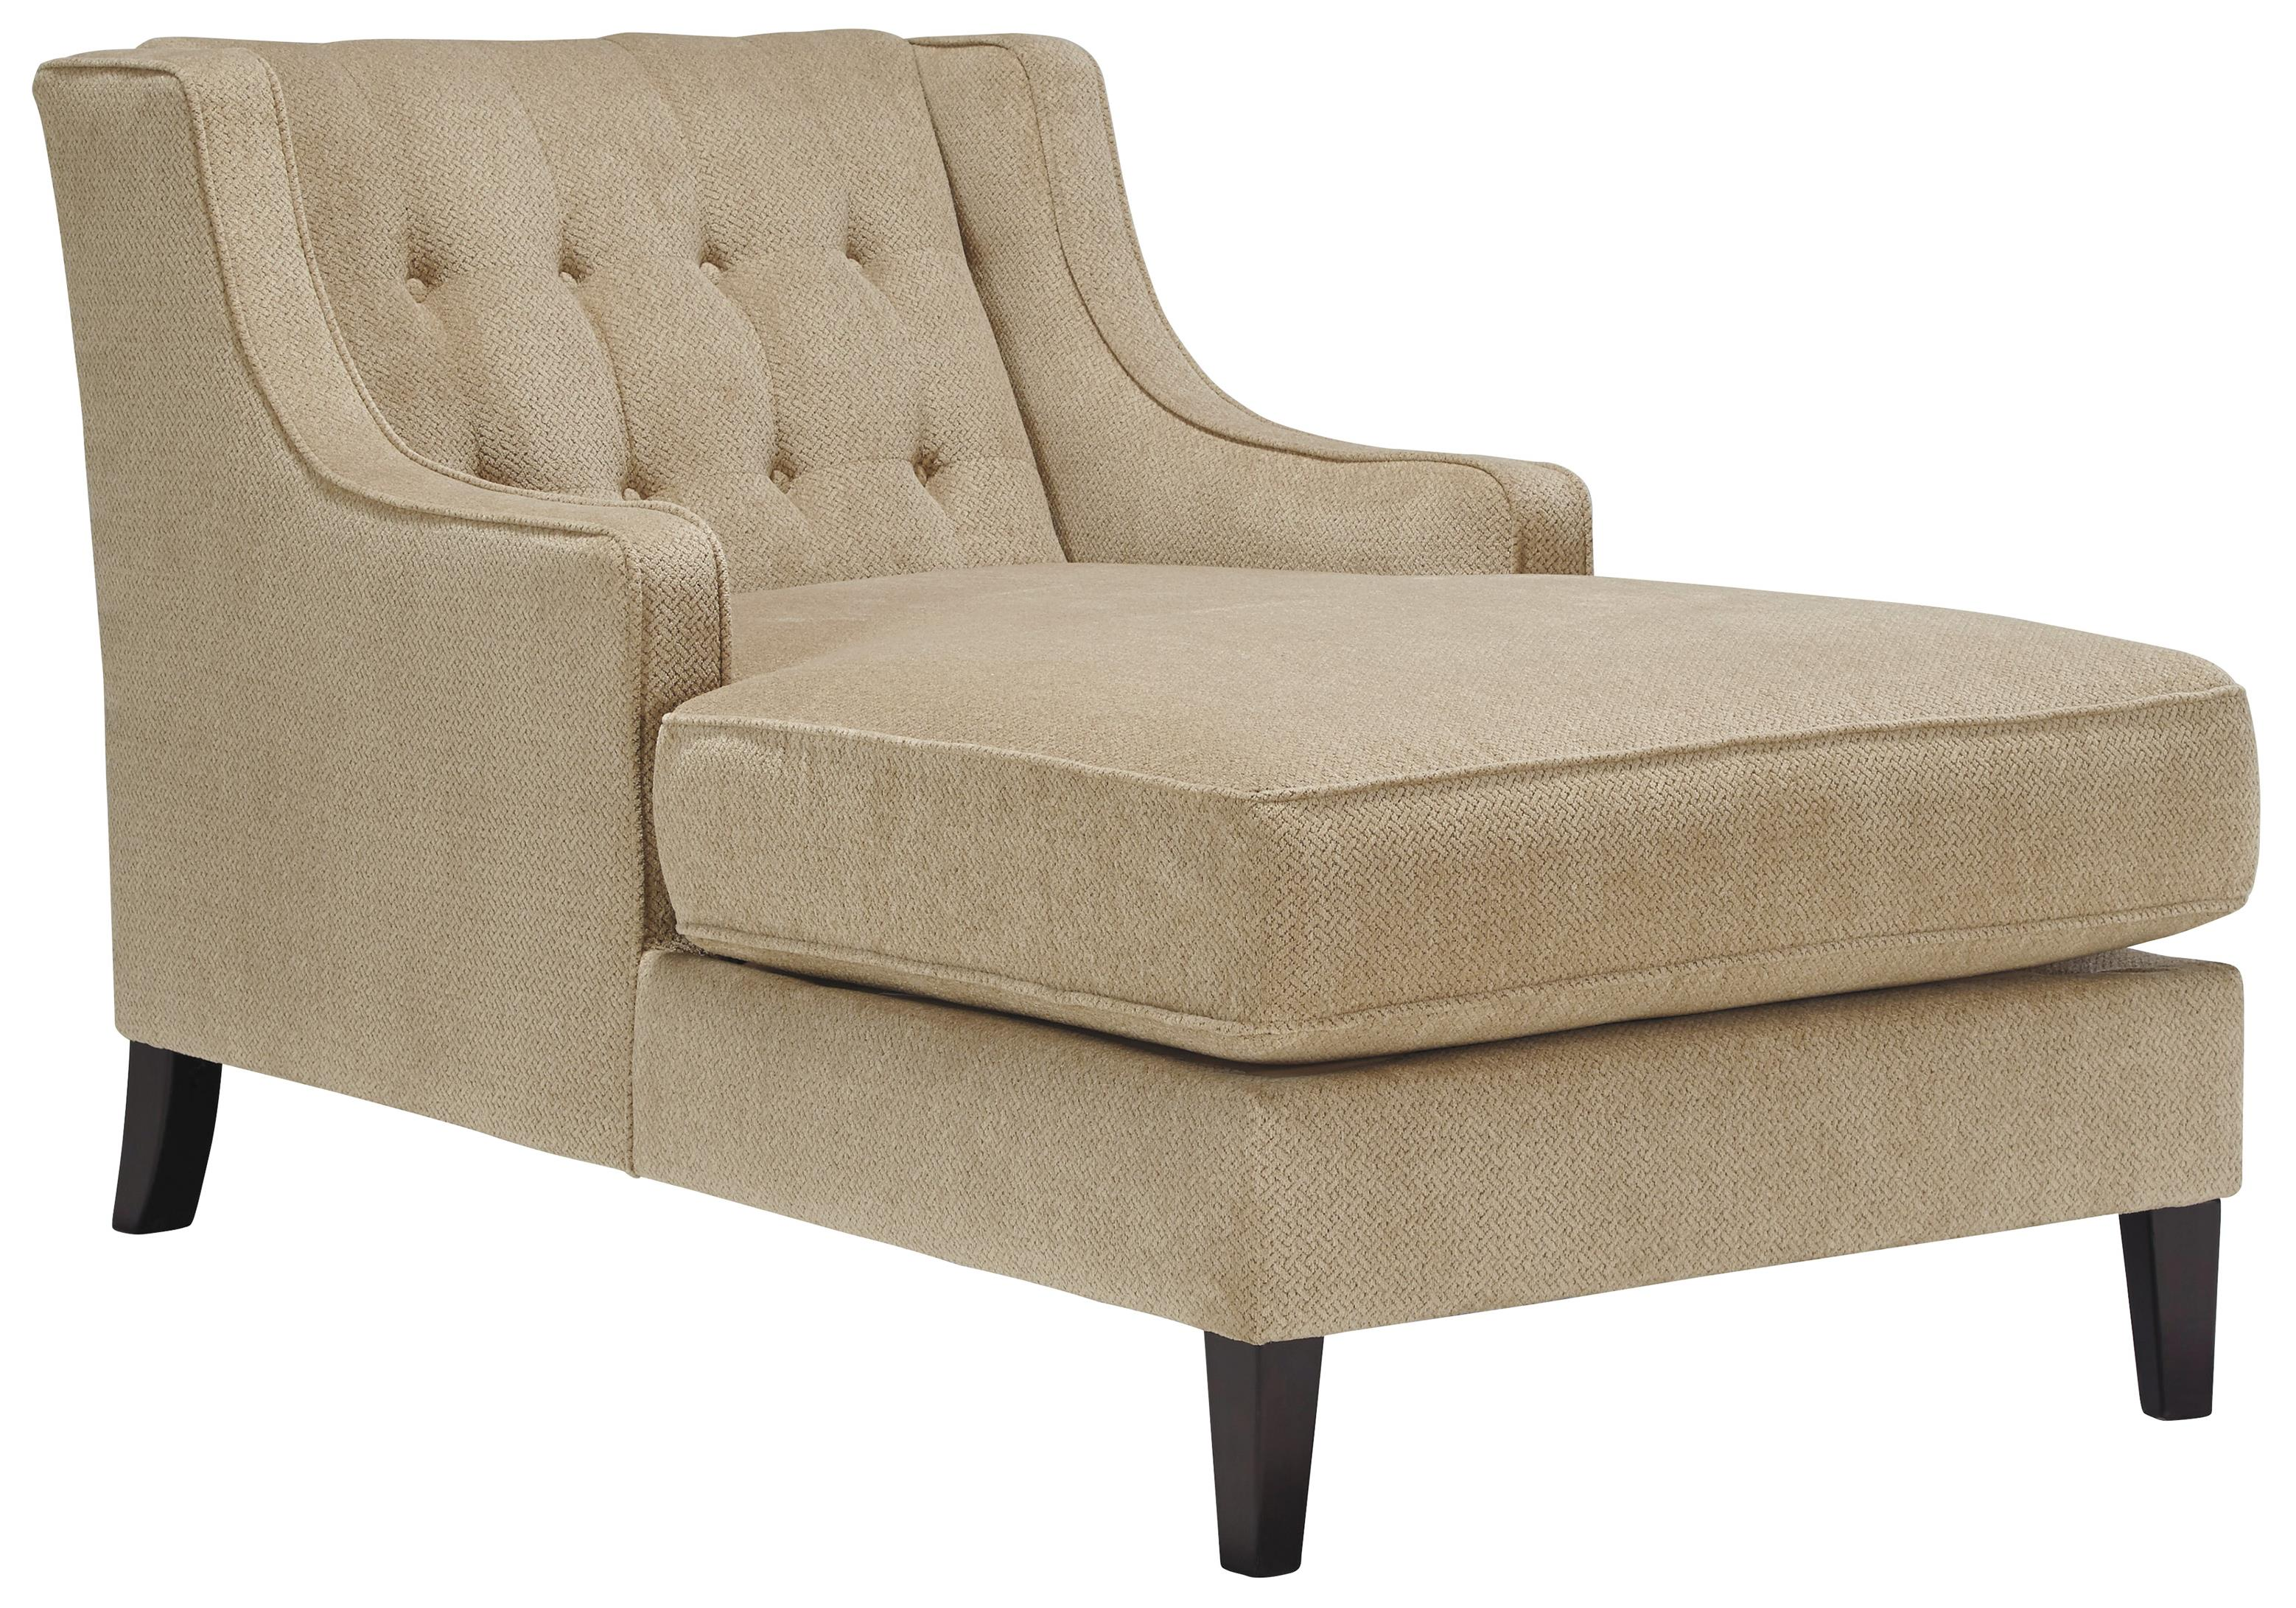 Benchcraft Lochian Chaise - Item Number: 5810015